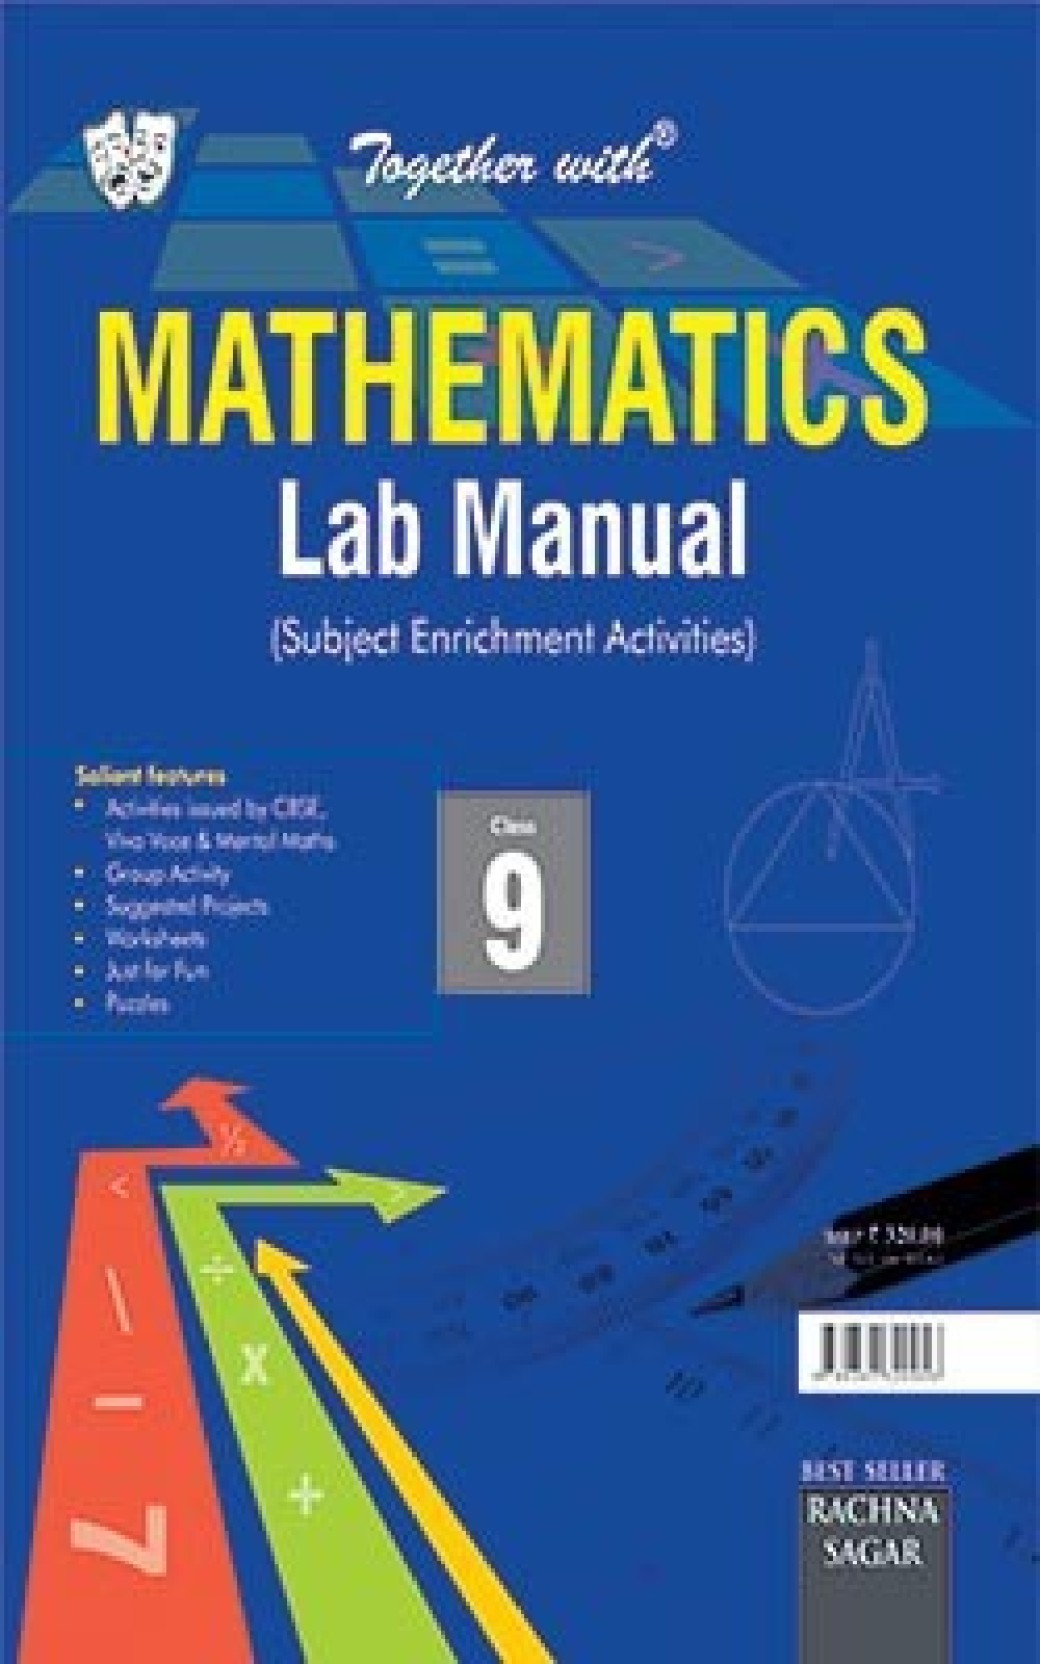 Together With CBSE/NCERT Lab Manual Mathematics for Class 9 for 2019  Examination. ADD TO CART